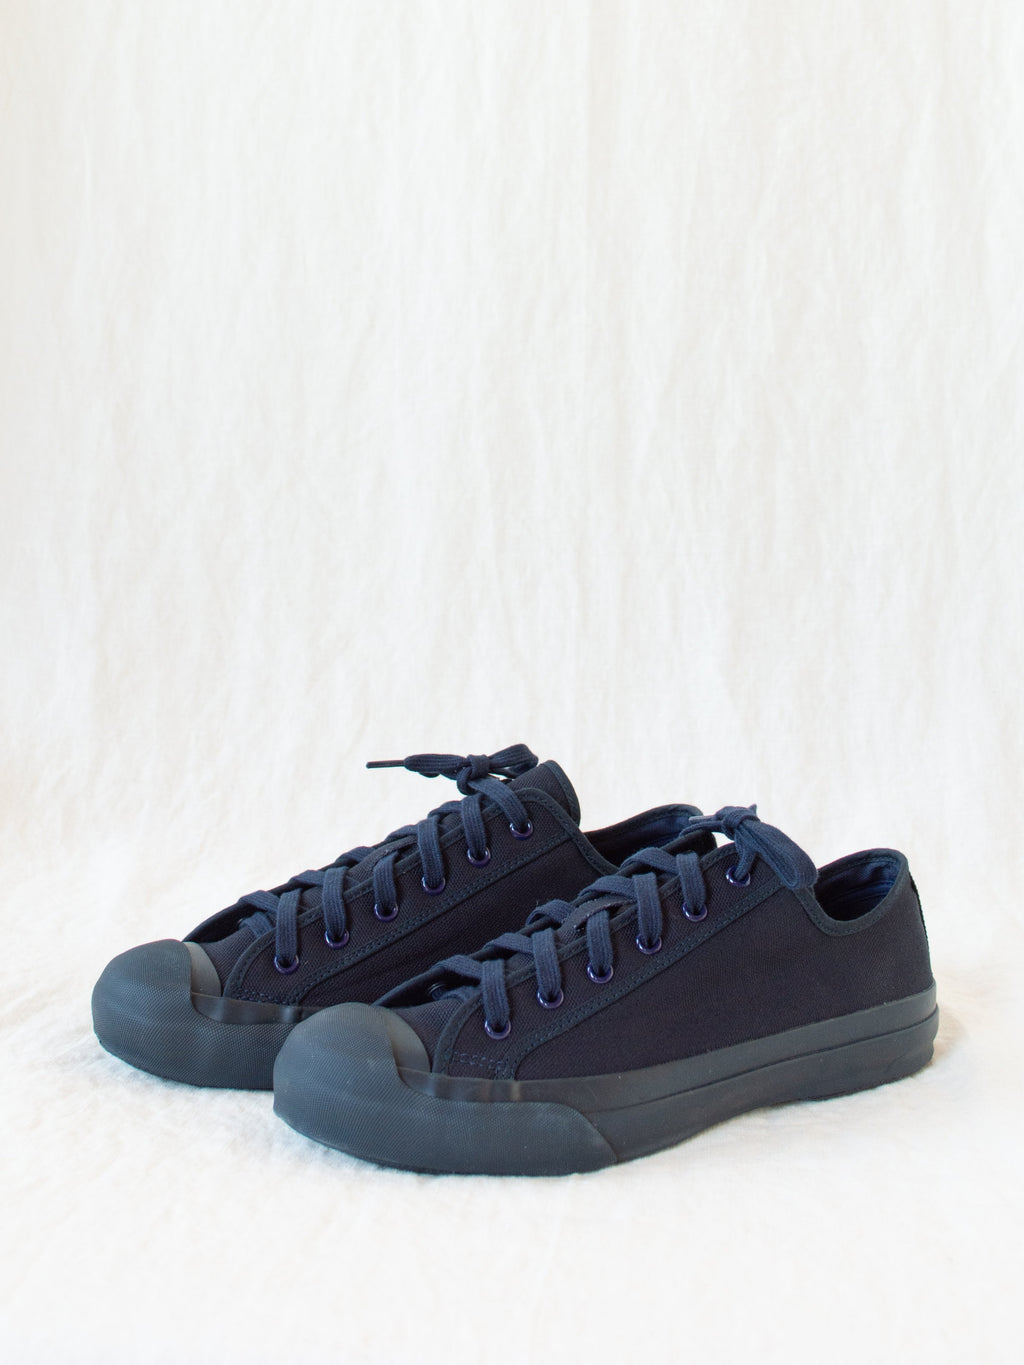 Moonstar x Studio Nicholson - Dark Navy